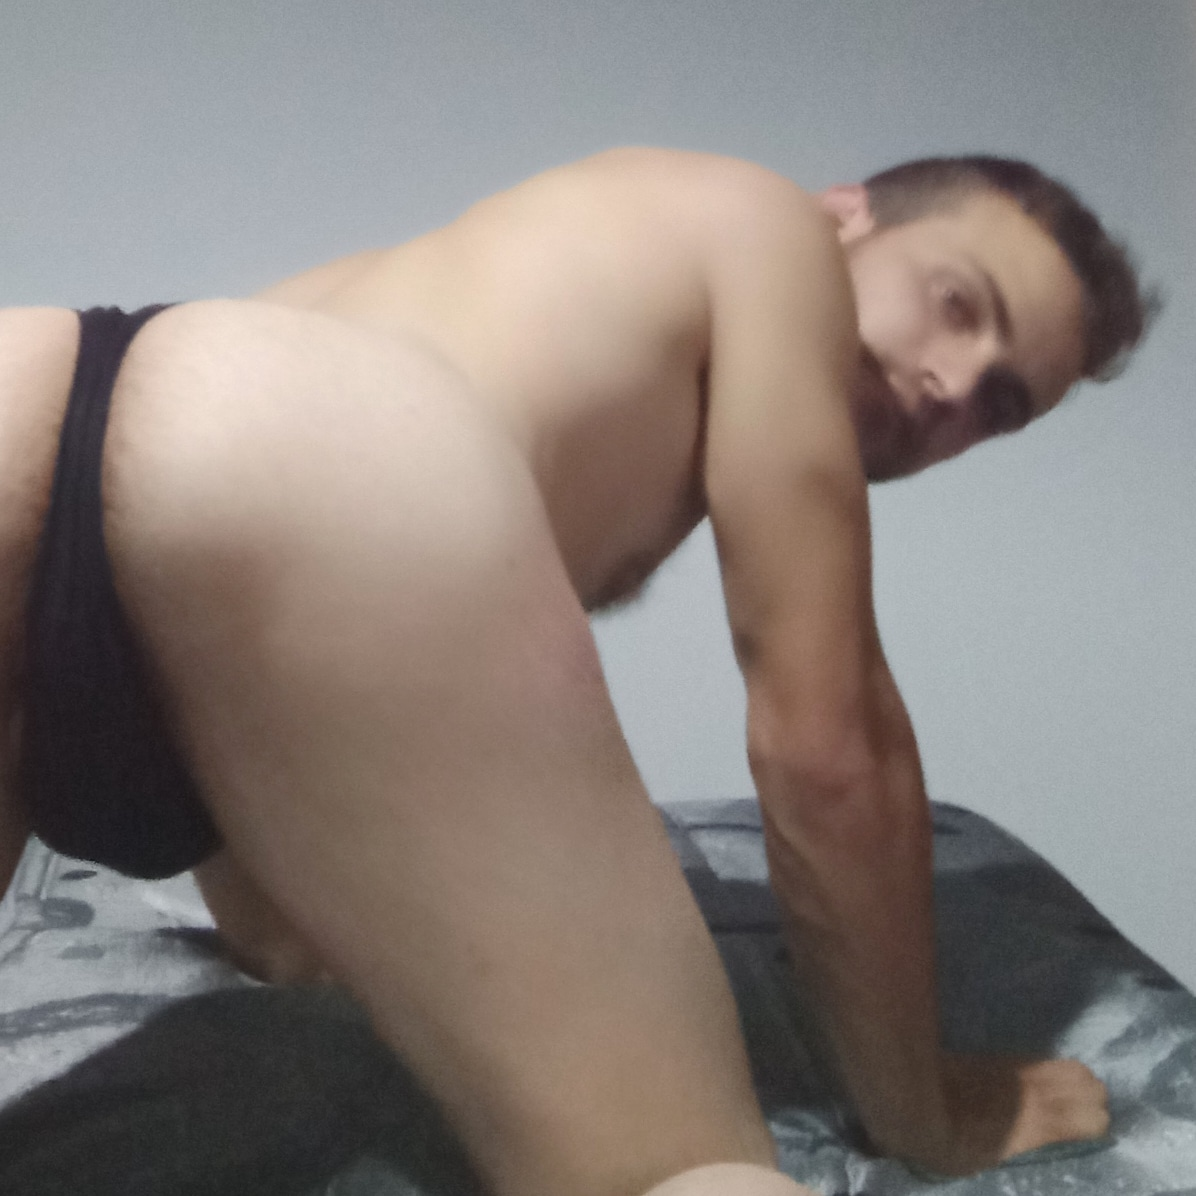 Fagboy sissy total exposed